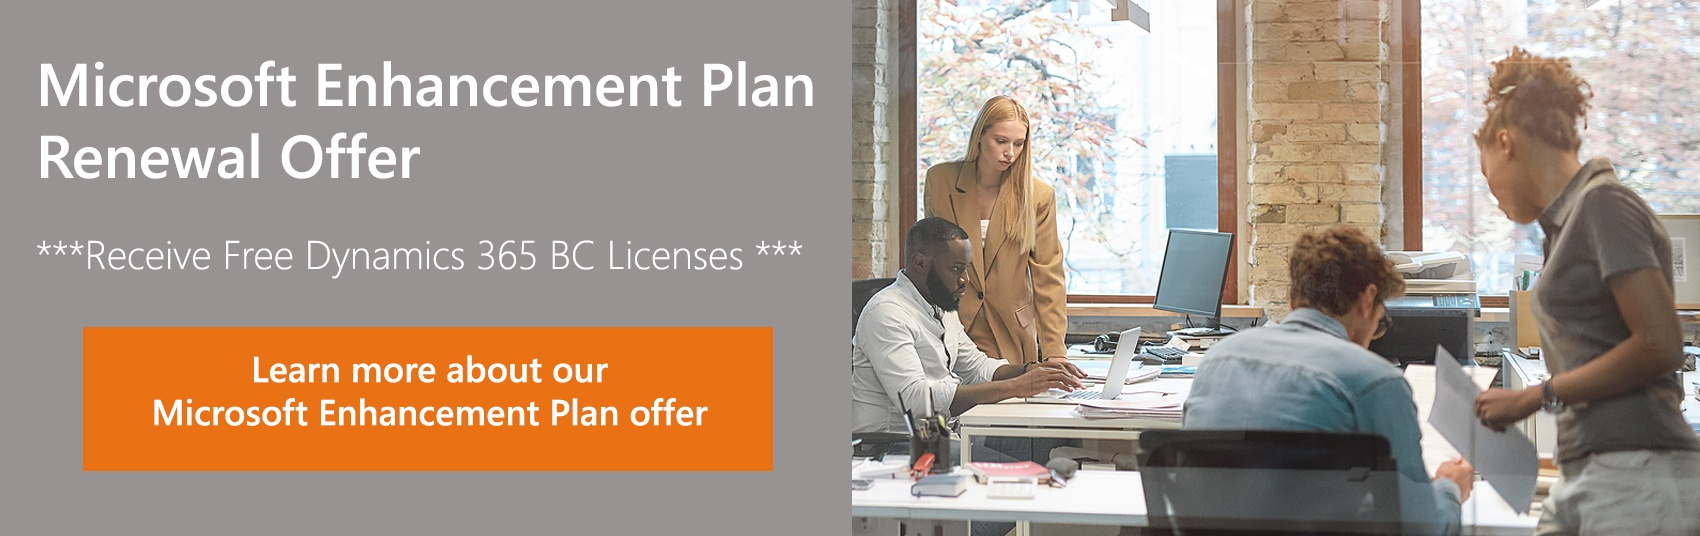 Microsoft Enhancement Plan Renewal Offer